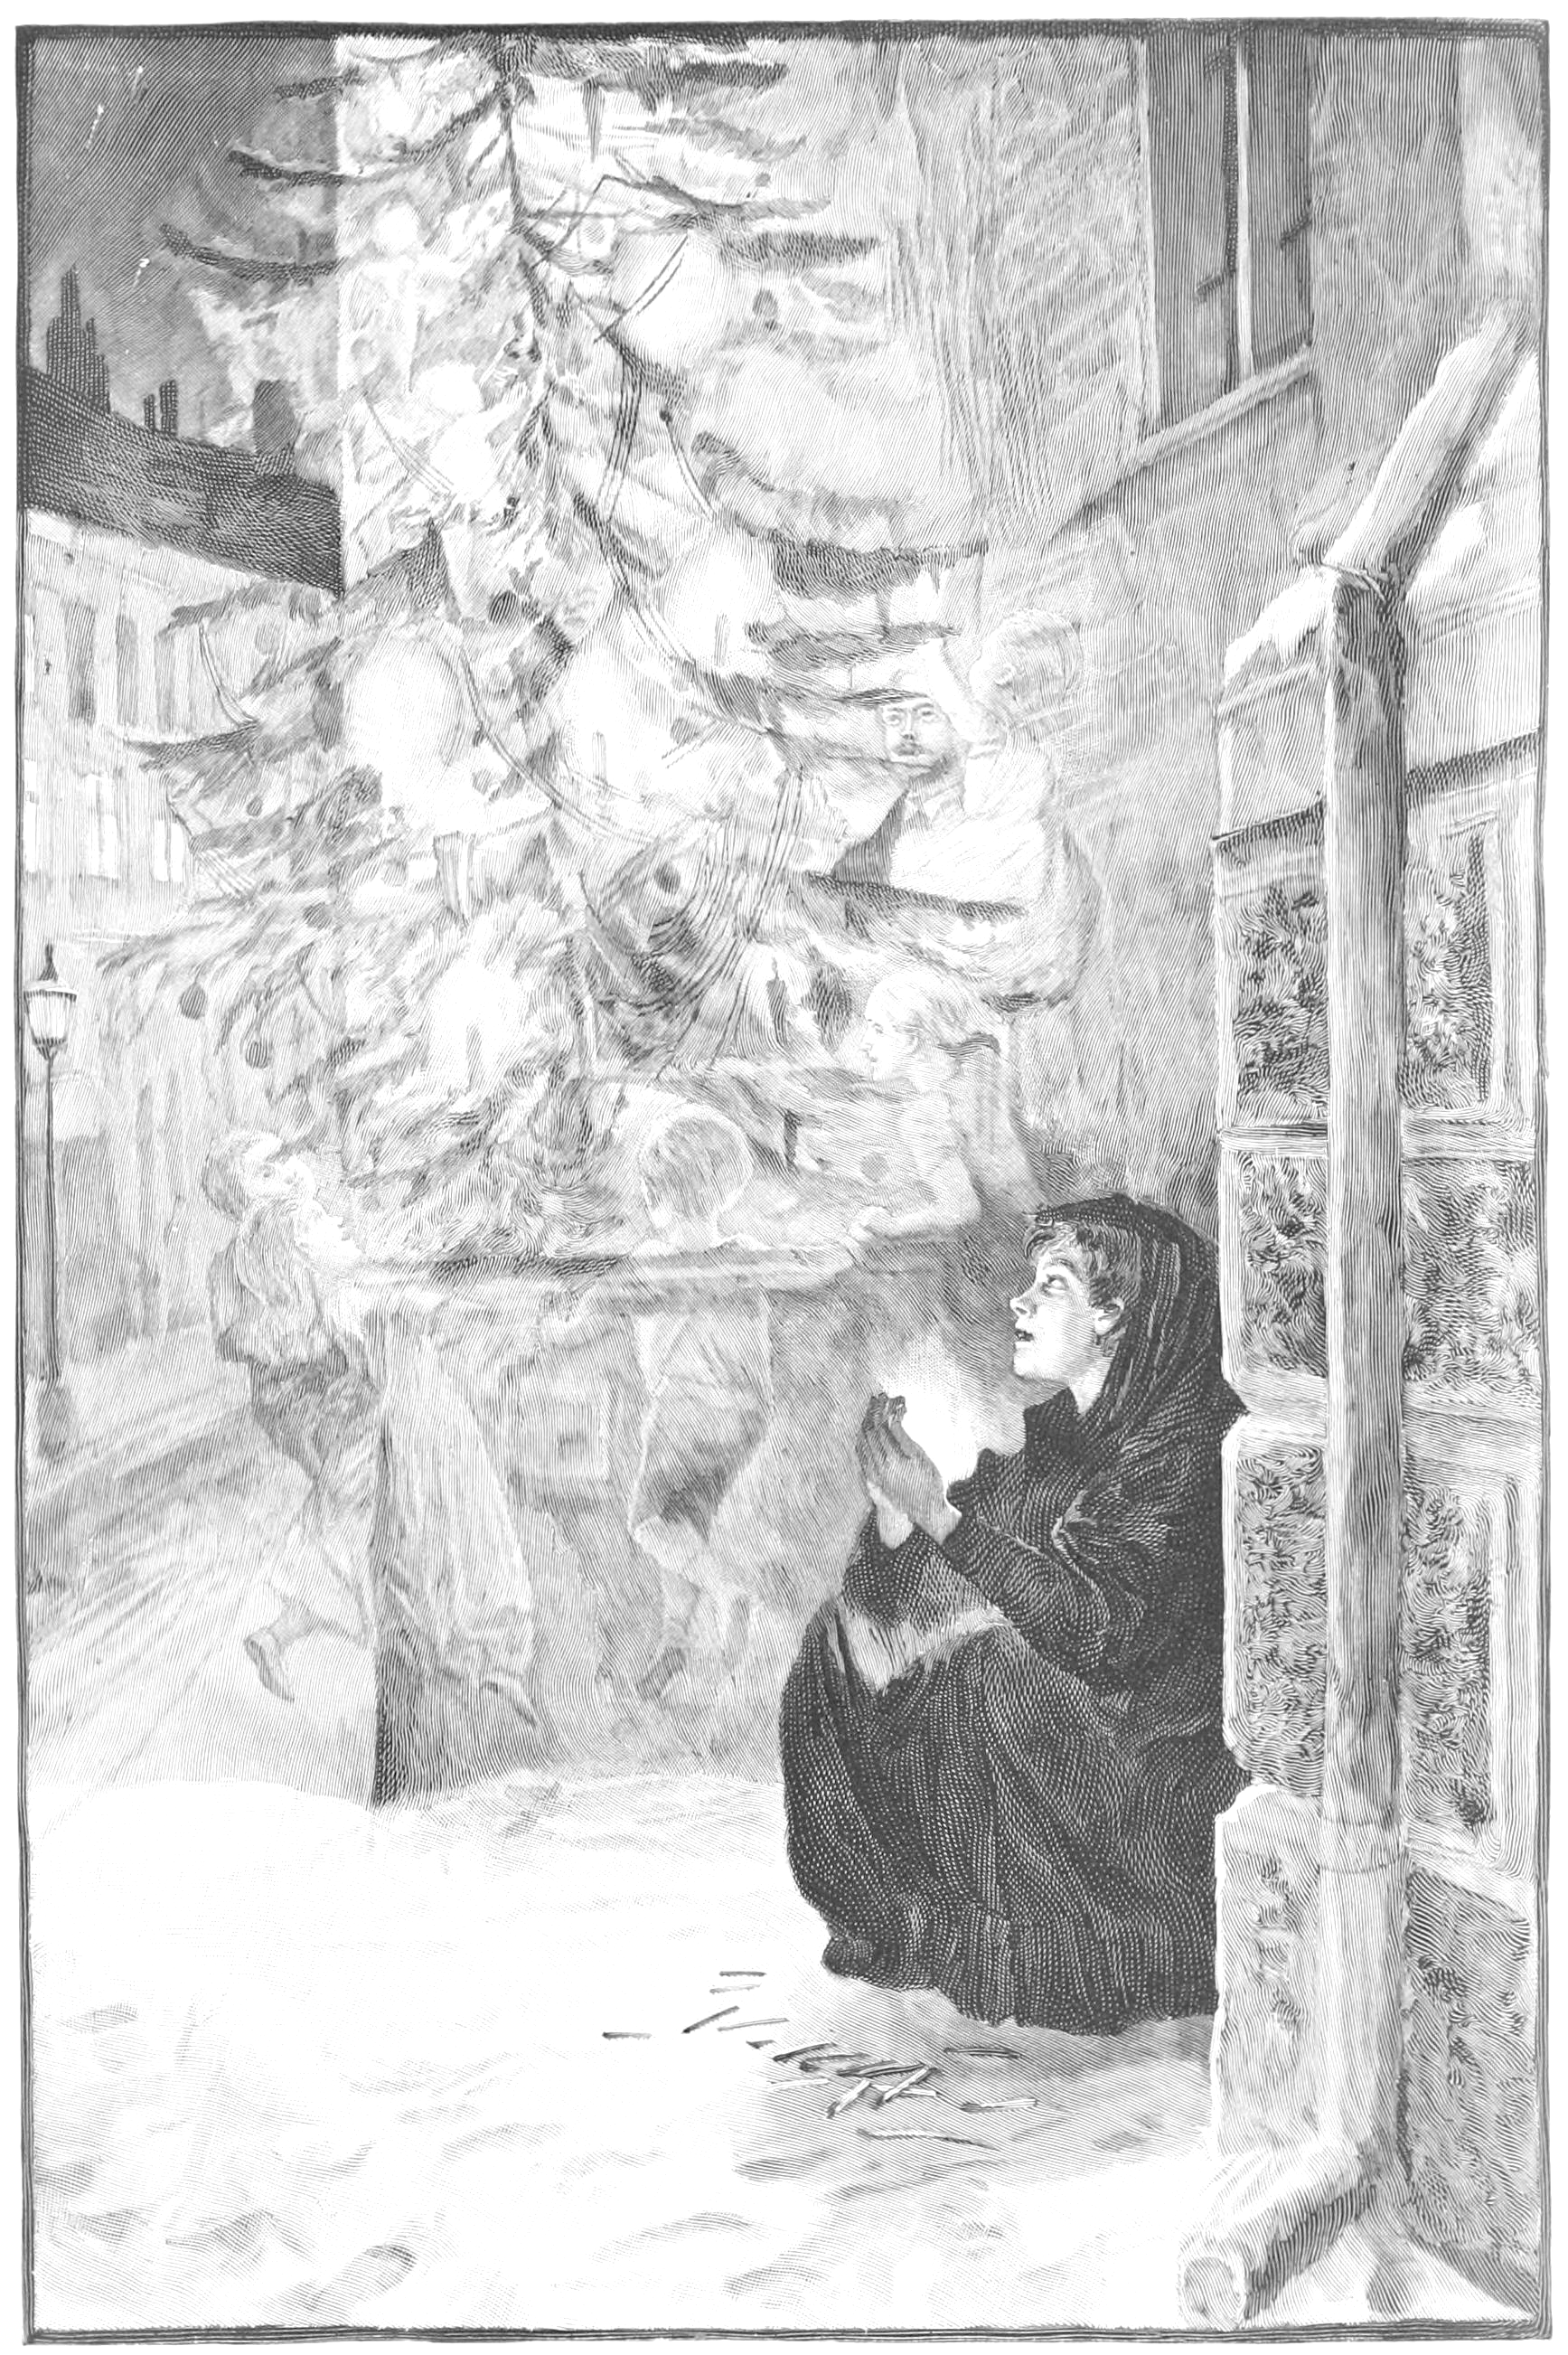 A drawing of a girl wrapped in a cloak crouching in the snow. She is having a vision of a Christmas tree.